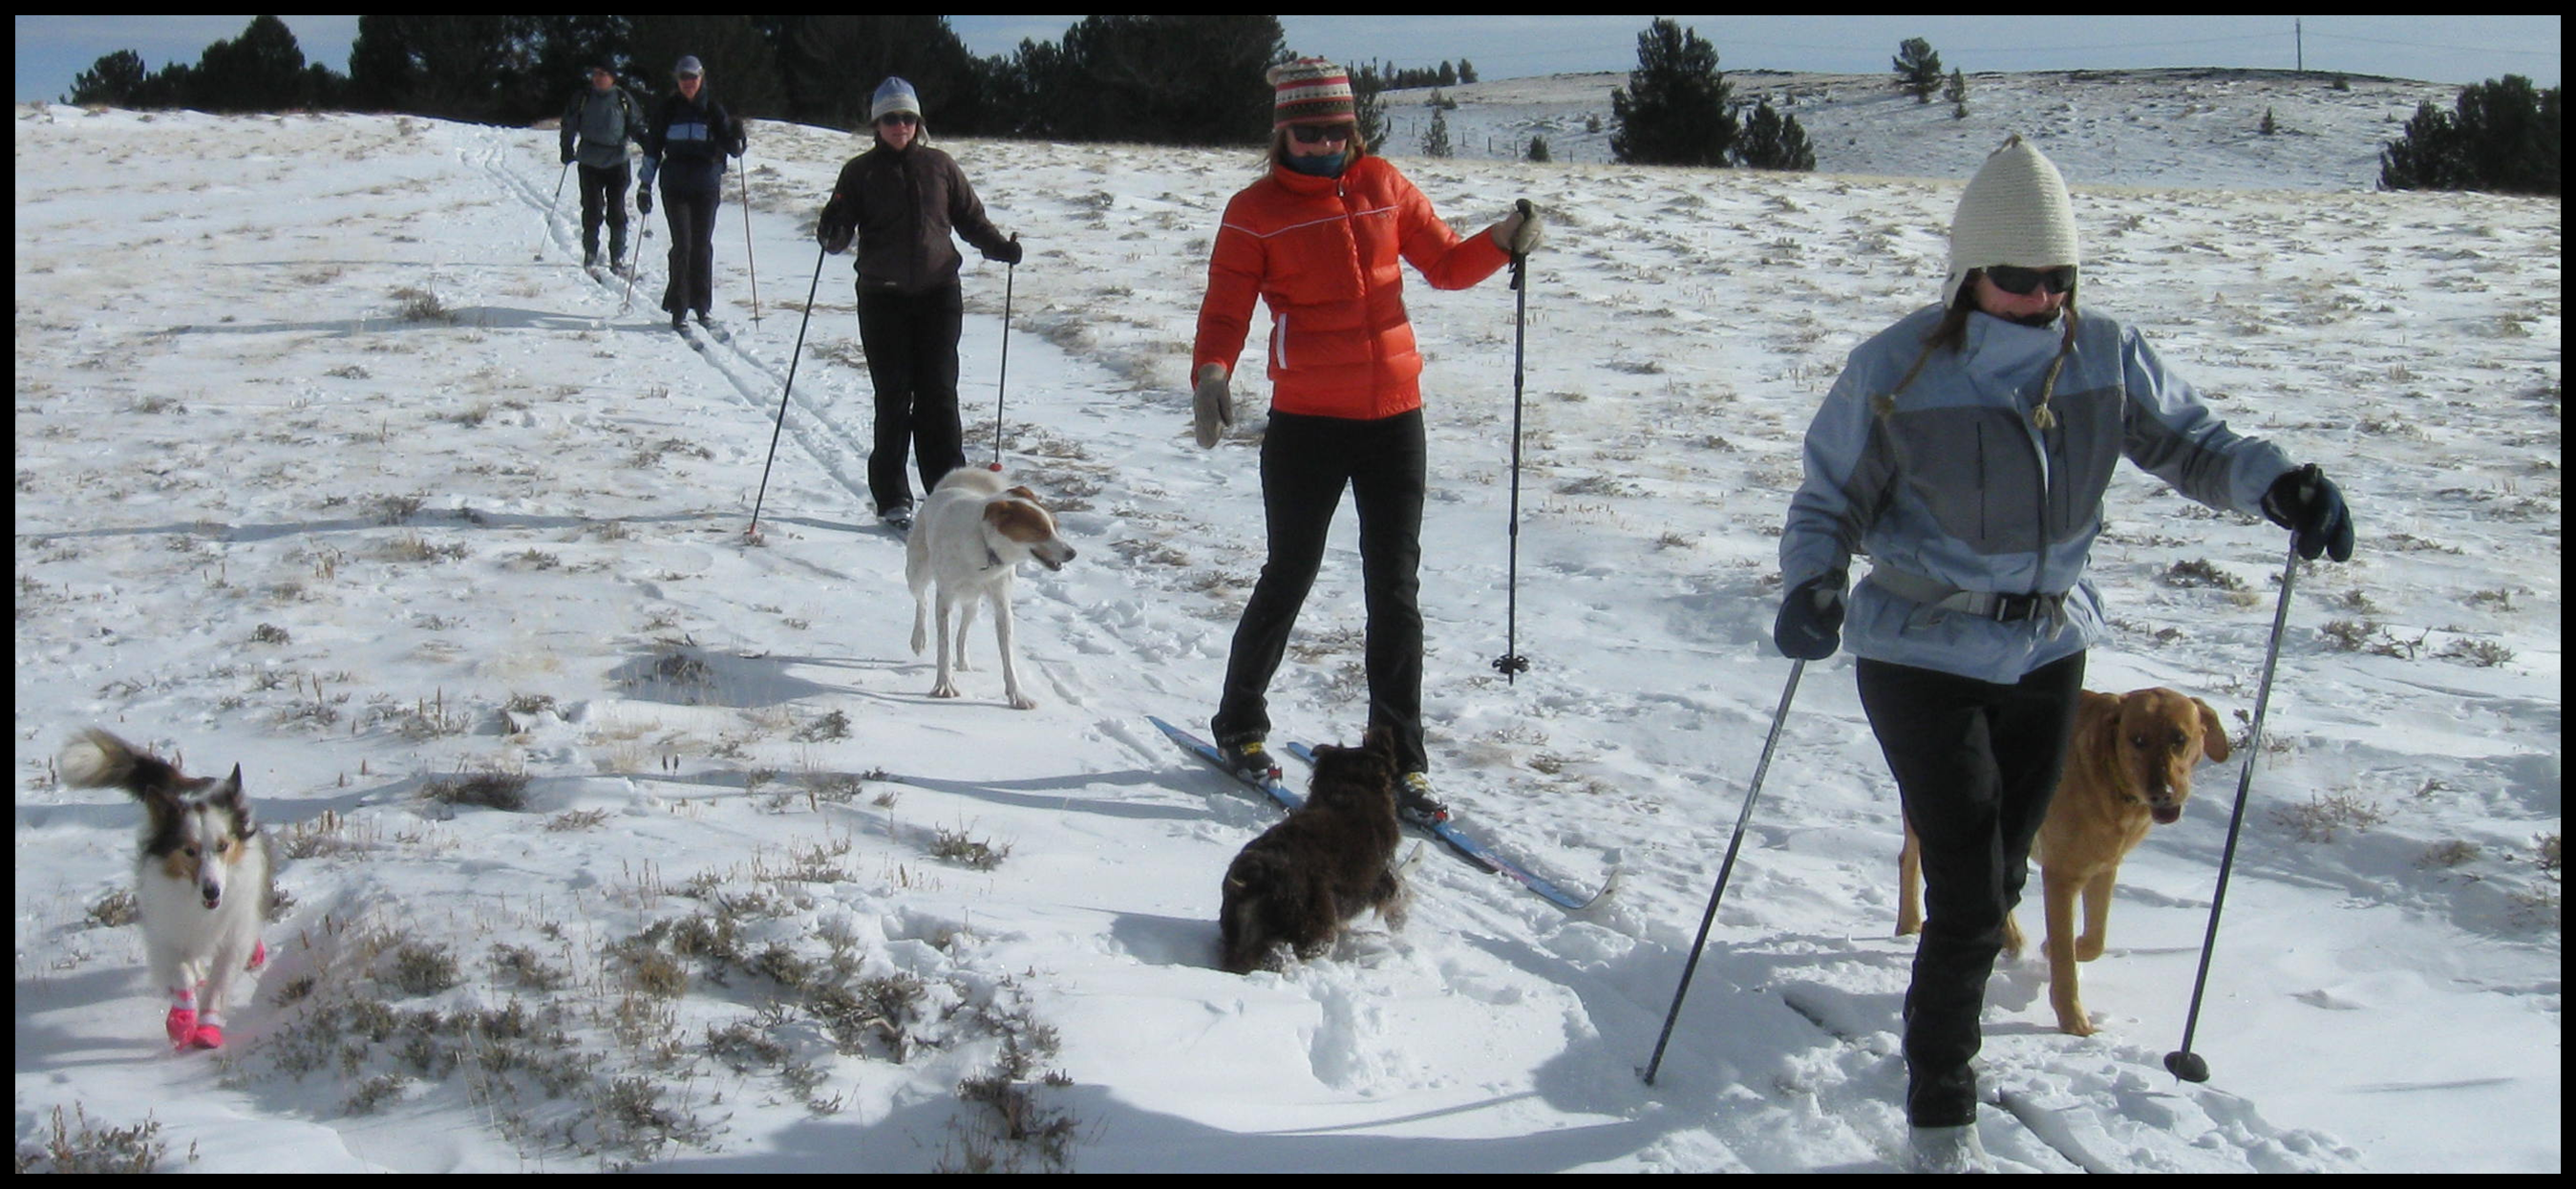 People and dogs cross-country skiing at Willow Creek